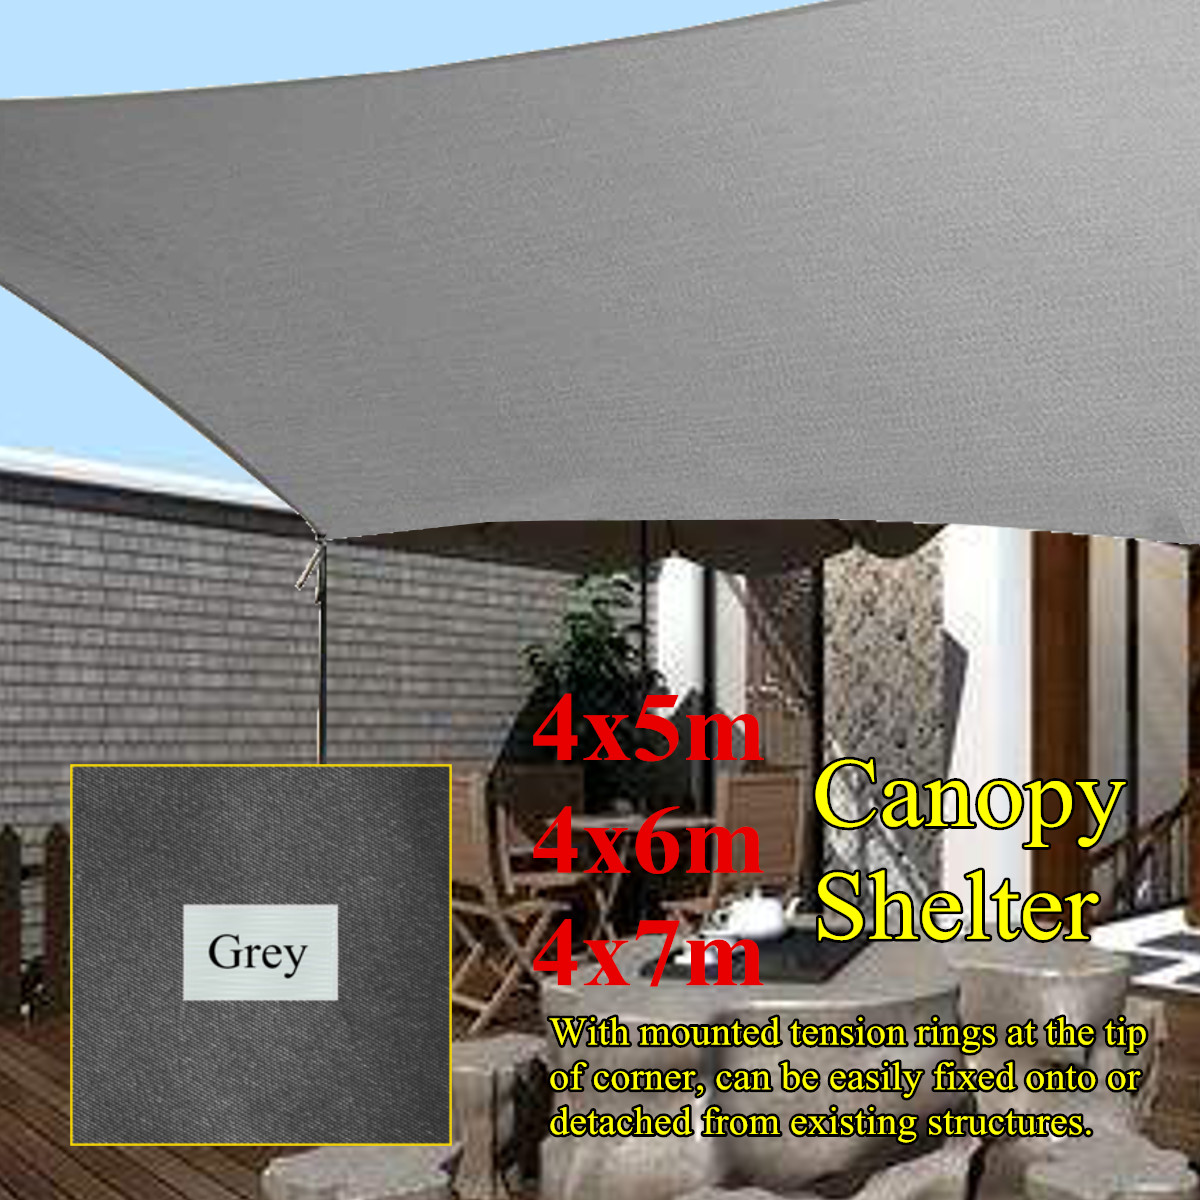 Oxford Cloth Grey Sun Shade Canopies 4x5/6/7m Outdoor Camping Hiking Yard Garden Patio Shelters Cover Waterproof Sunblock Canopy